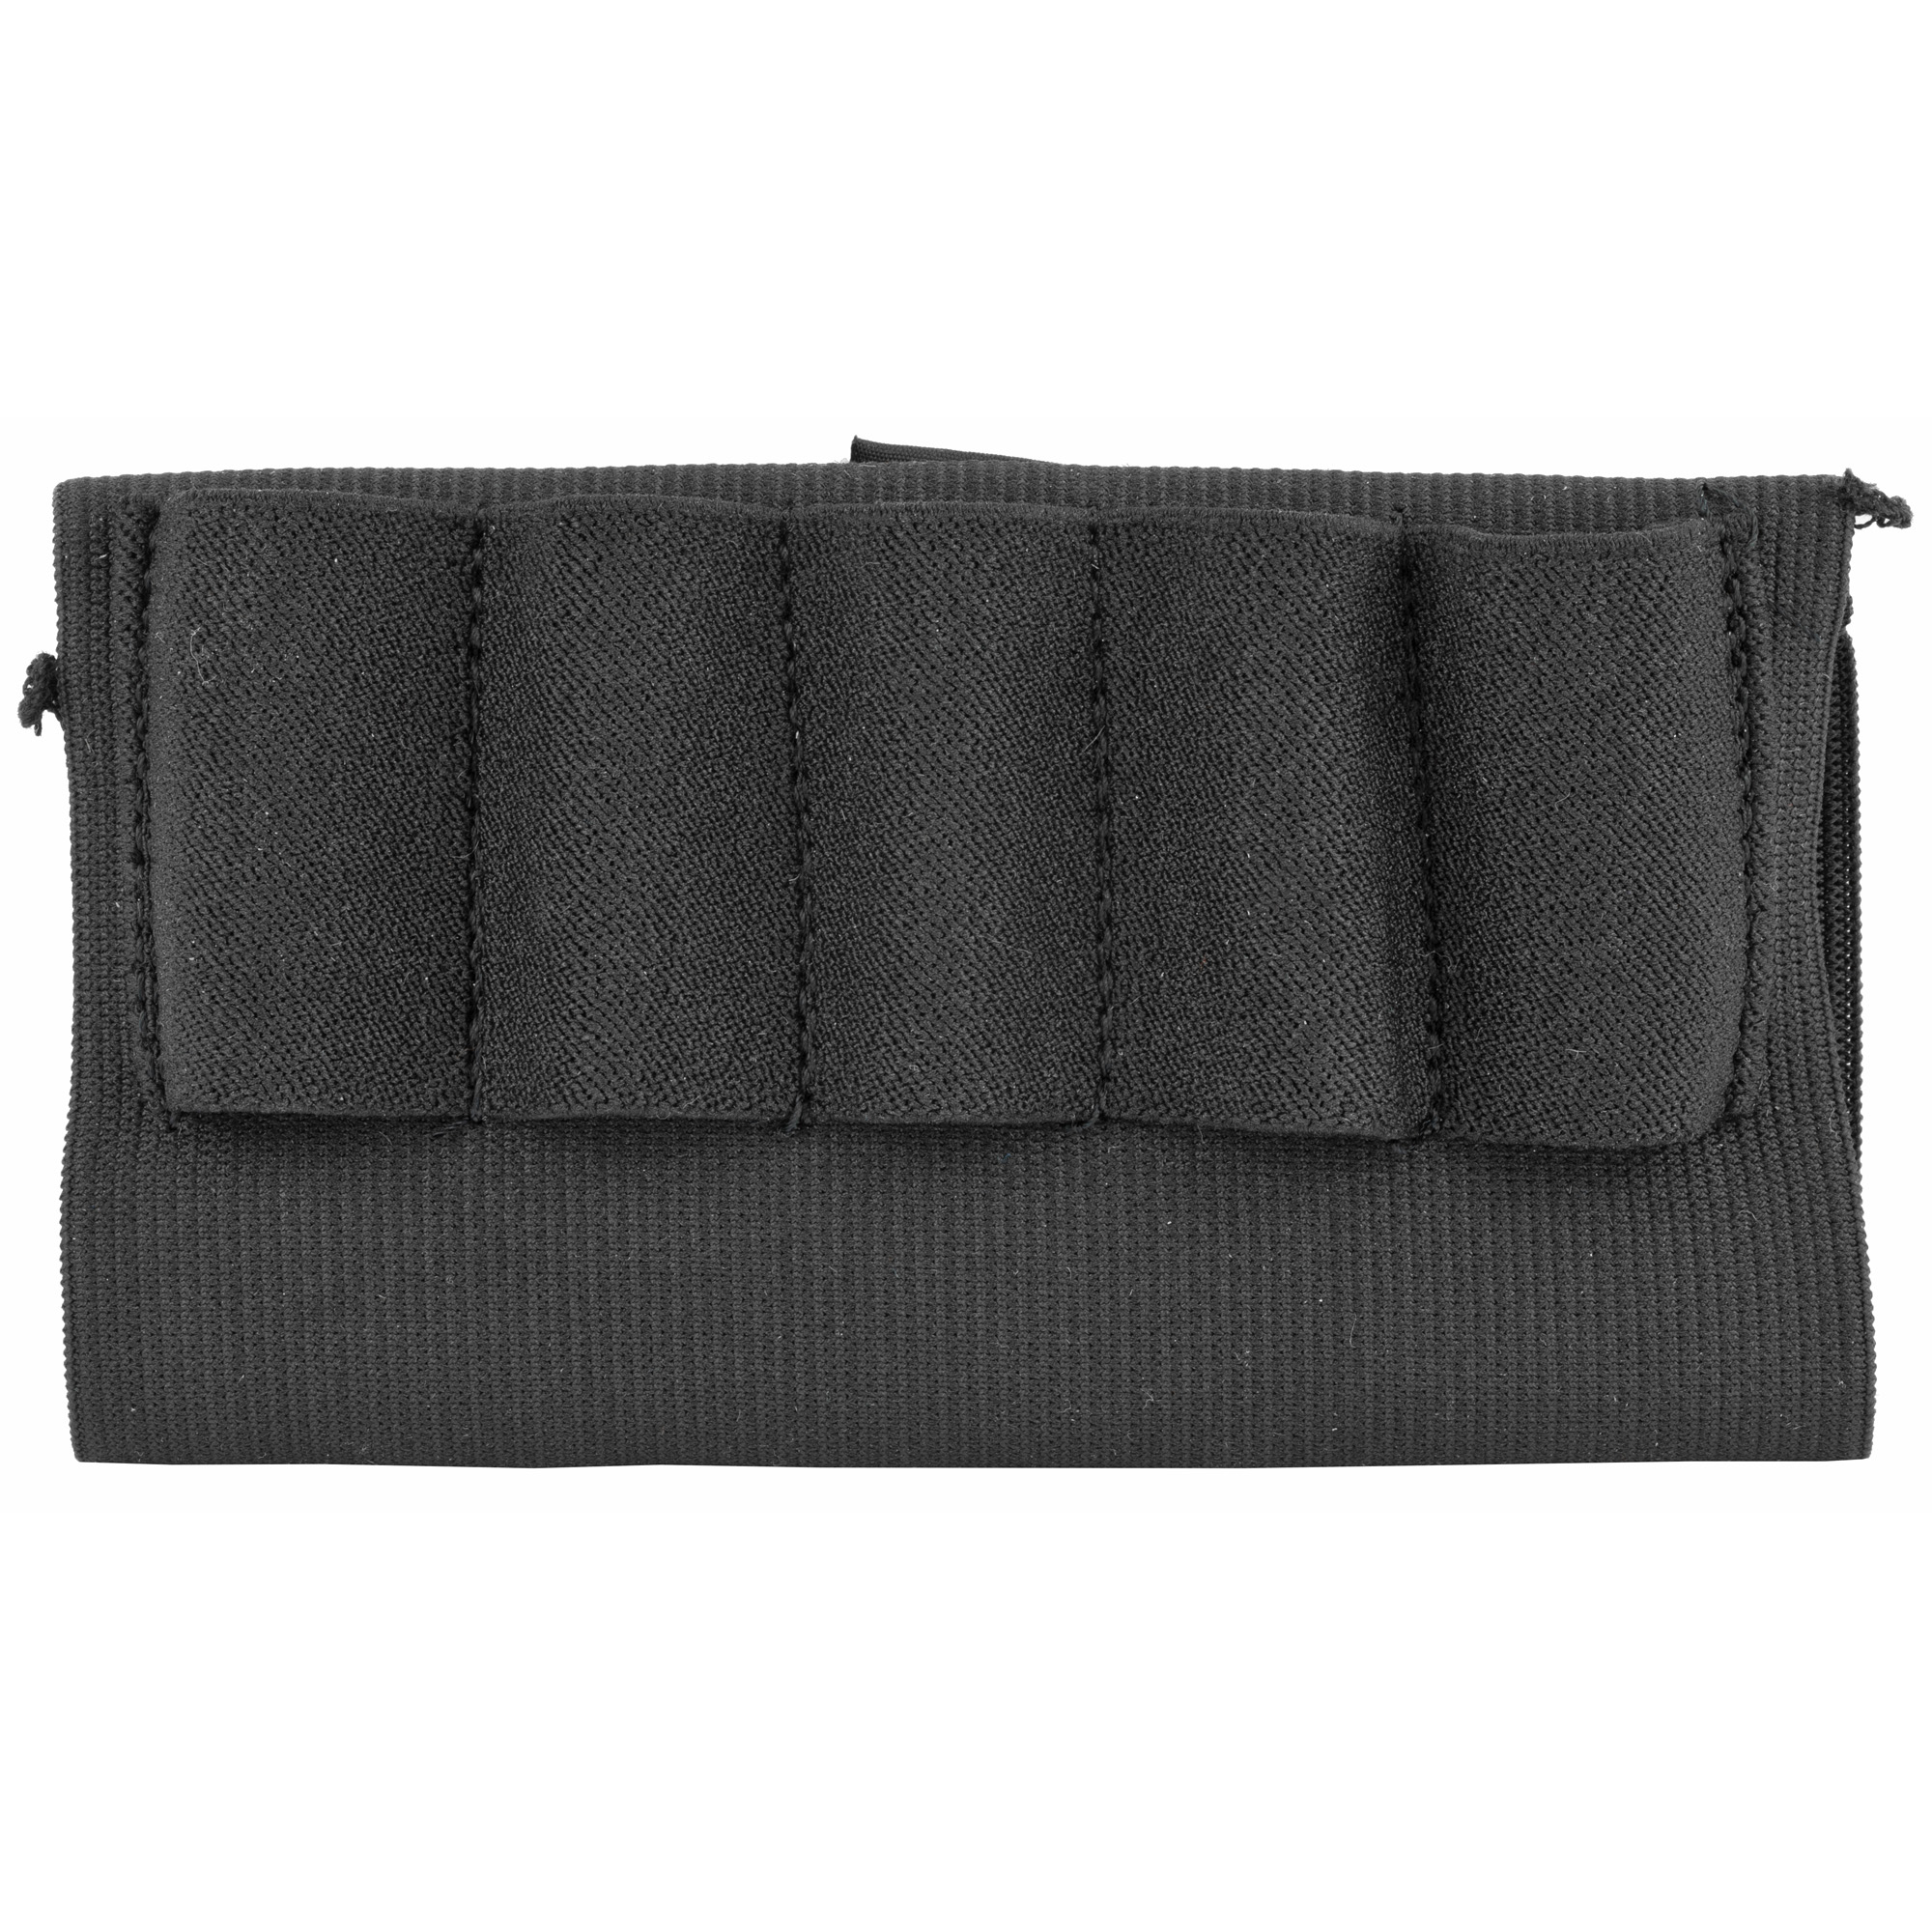 The open style buttstock shell holder slips over most shotgun stocks for quick ammo access. The elastic sleeve has 5 sewn on elastic ammo loops to hold 5 shot shells.